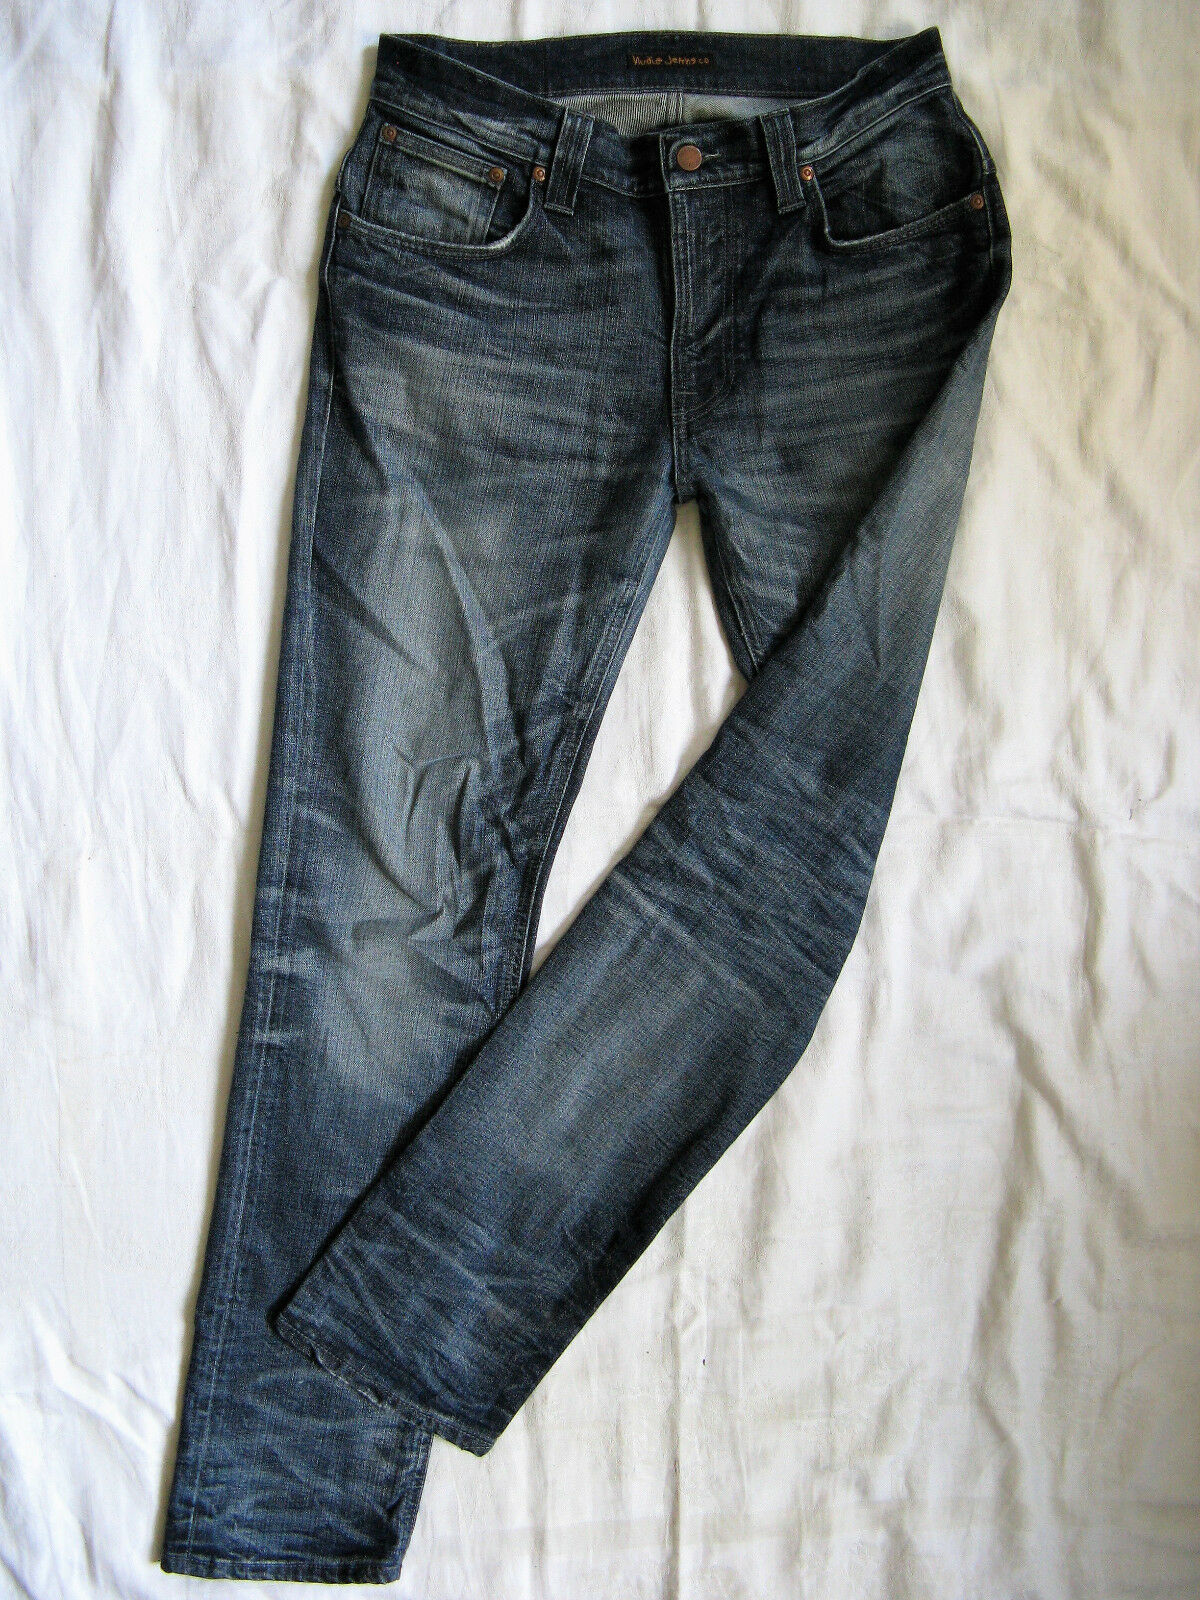 NUDIE Thin Finn Blau Jeans Stretch W32 L32 medium waist slim fit pipe organic